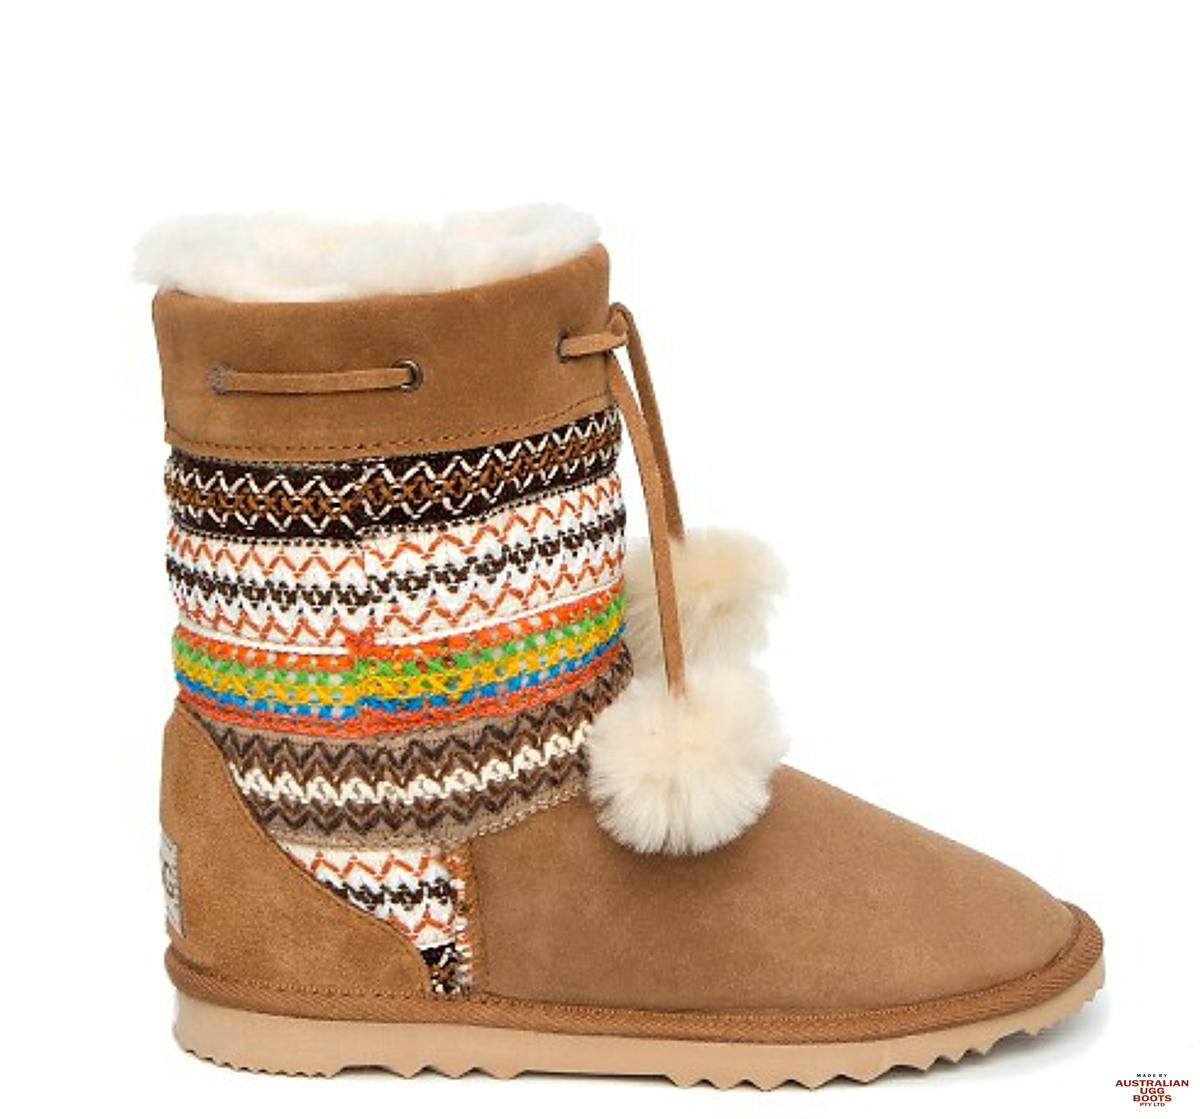 Navajo Short Boots With Pom Poms